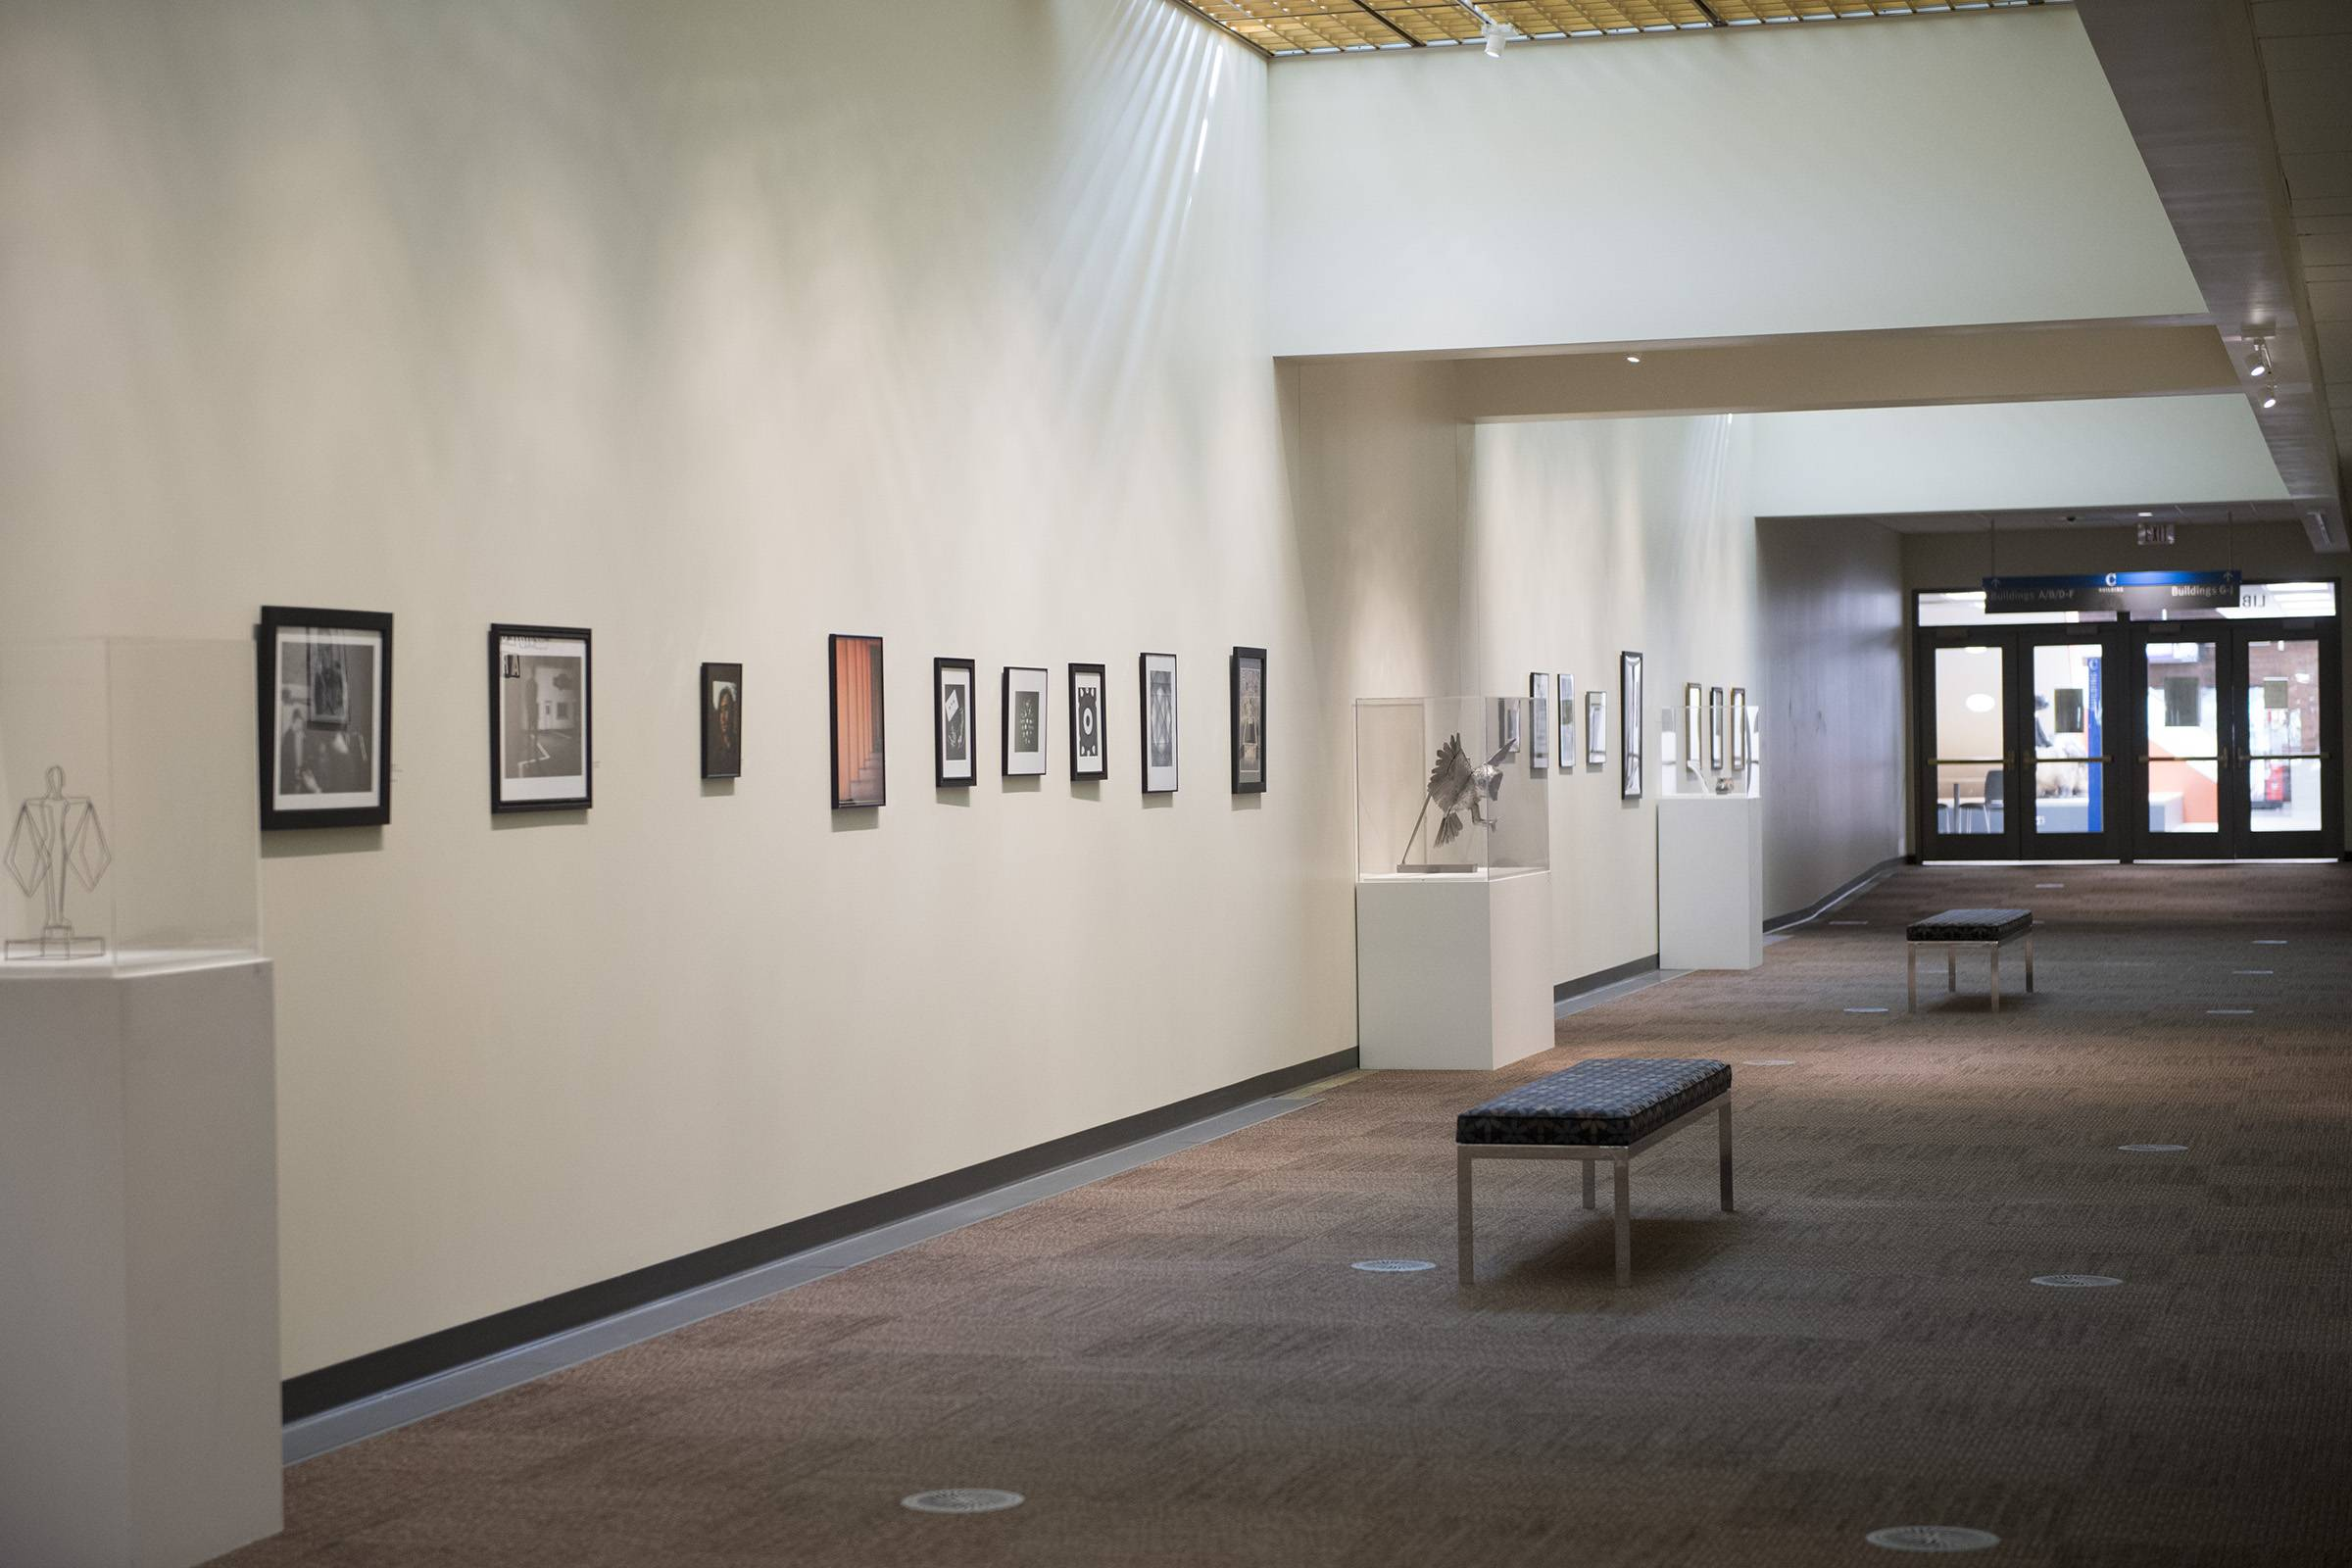 Elgin Community College's annual Student Juried Art Exhibition on display through July 29 features 36 pieces of artwork. Some of the artists' work may be available for purchase after the exhibit ends.